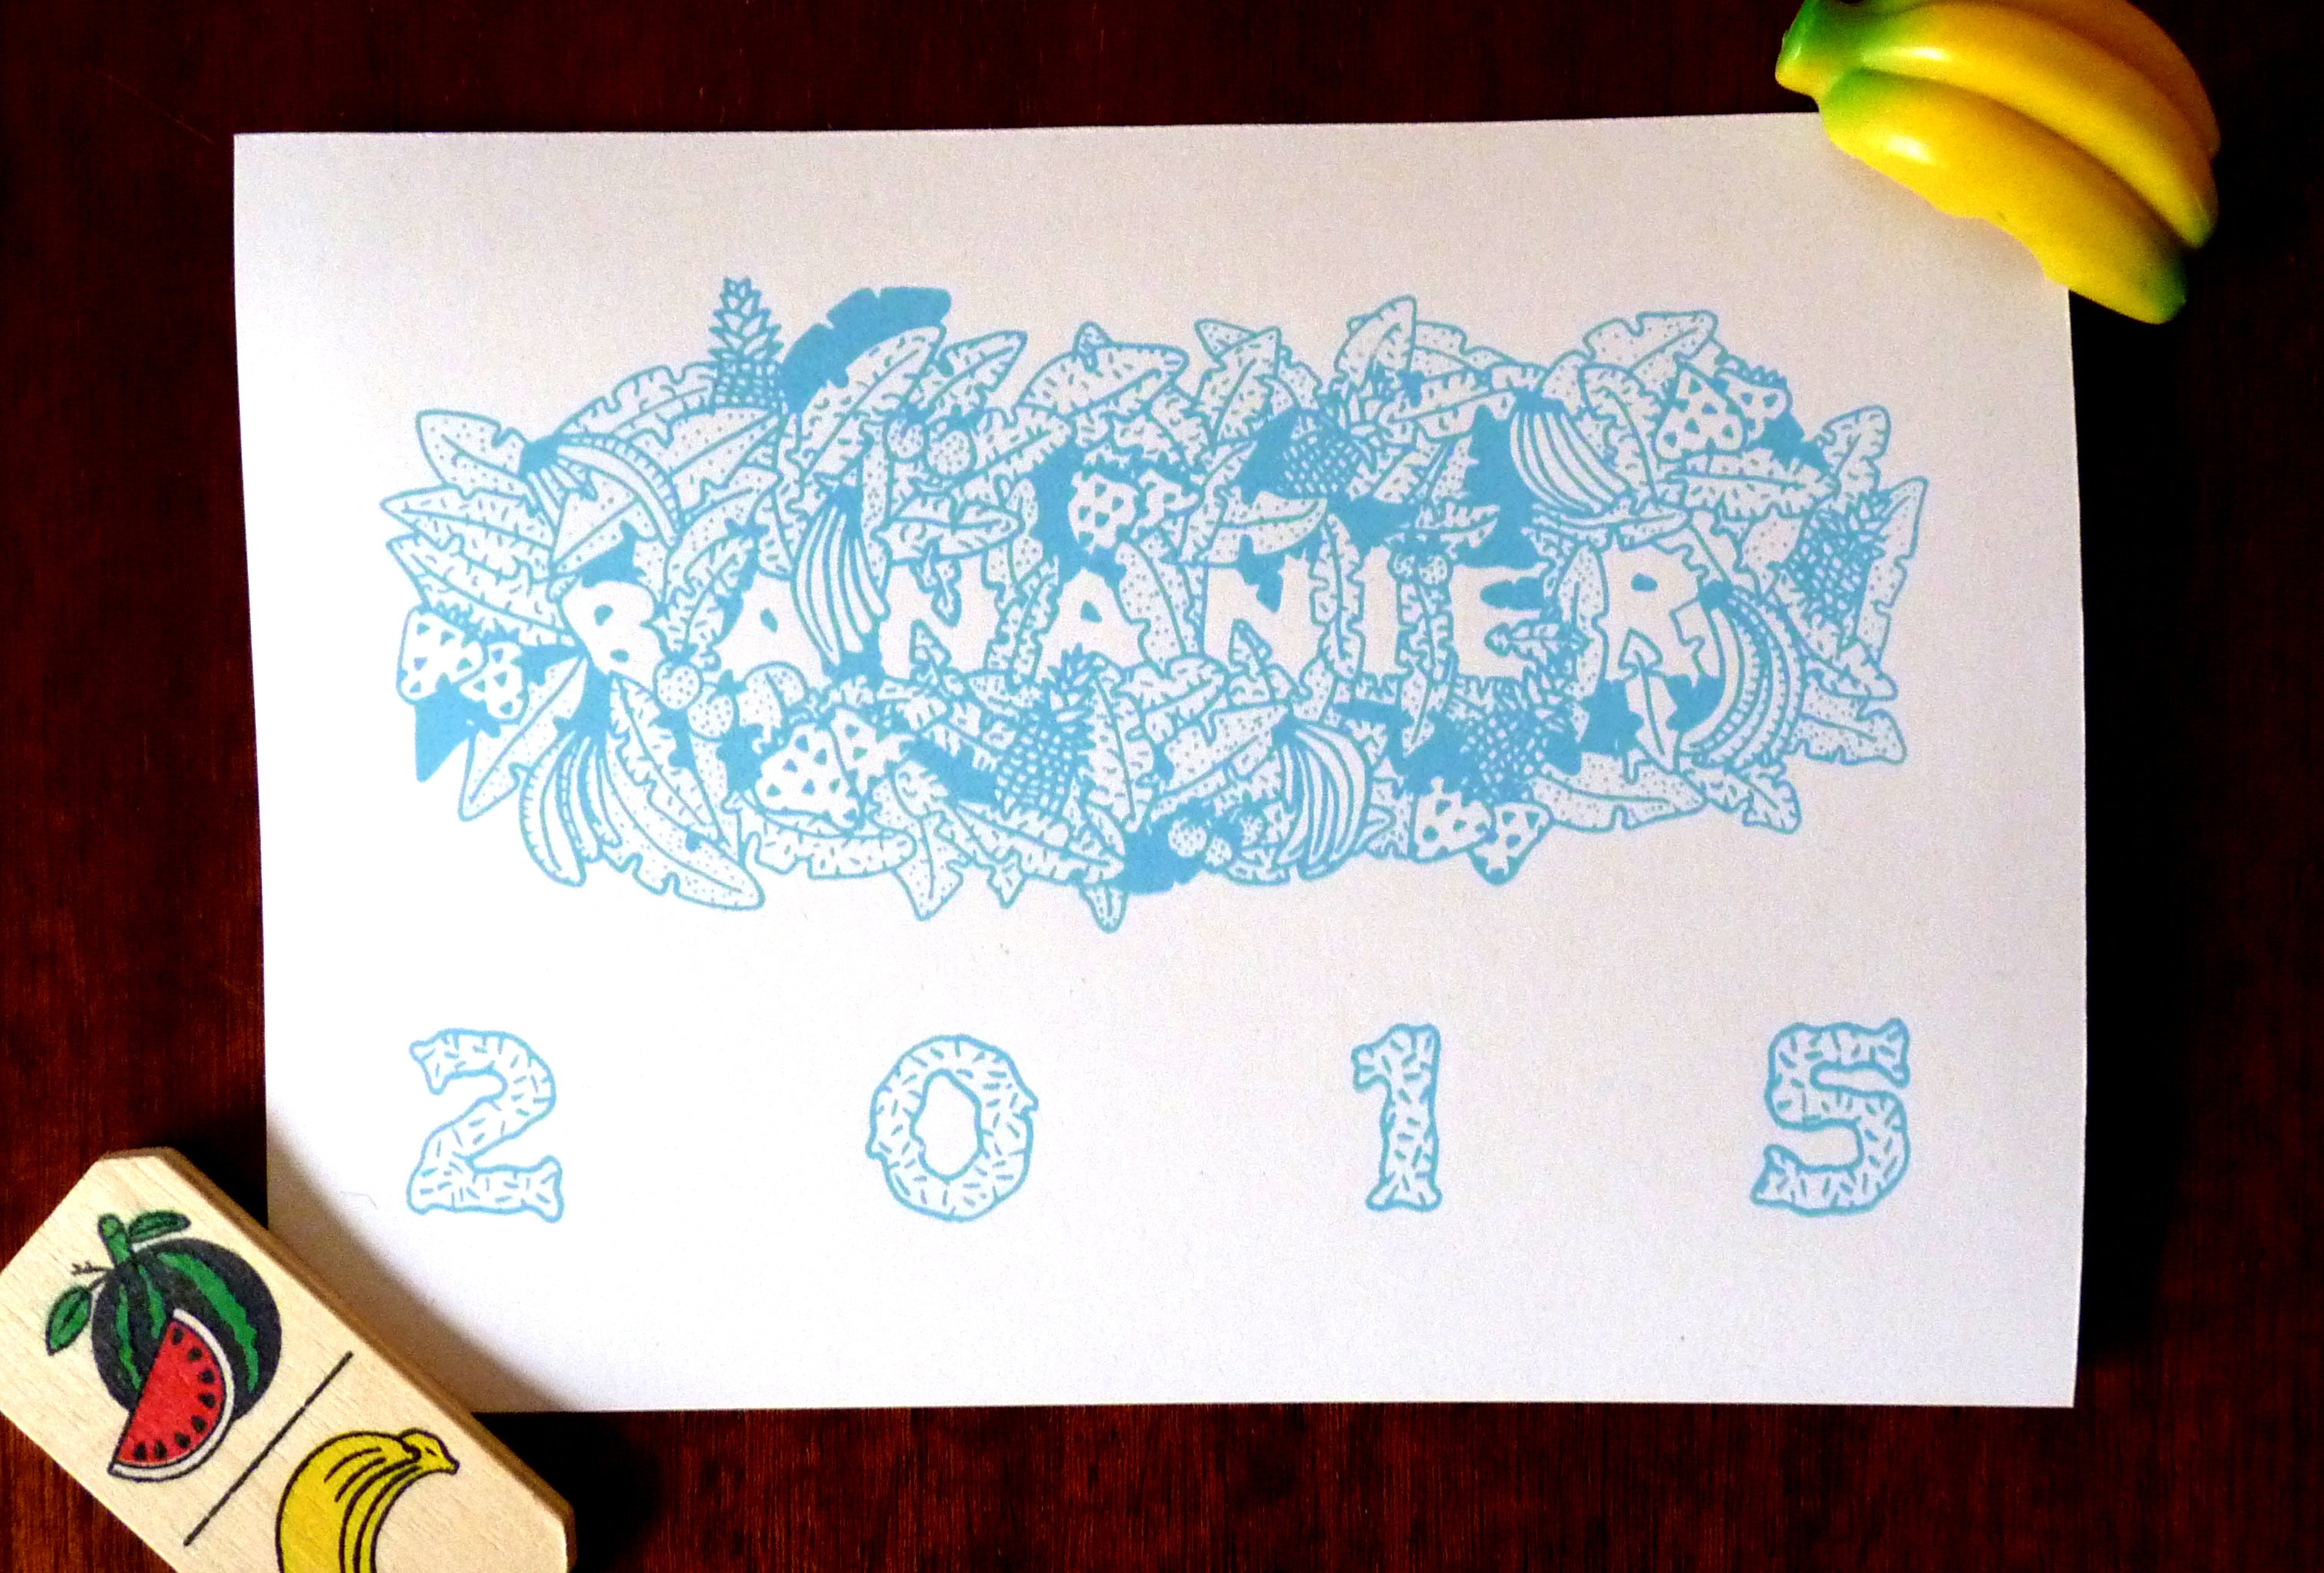 carte de bananier 2015 du collectif superfruit